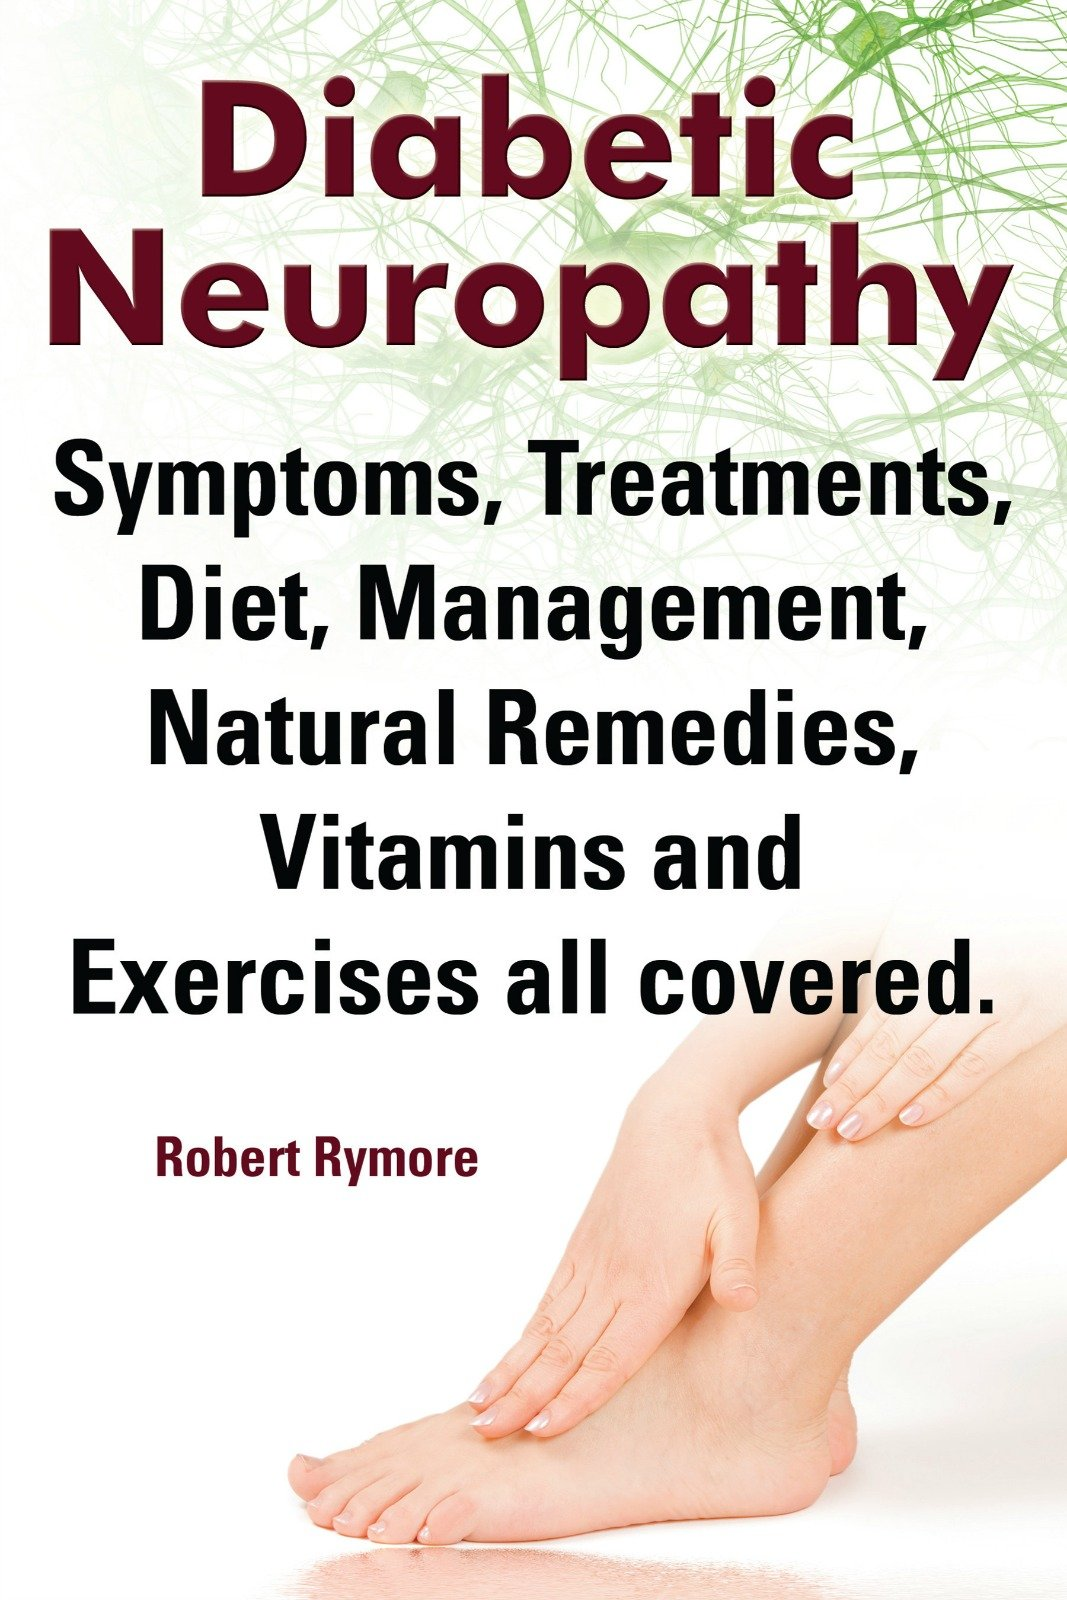 Diabetic Neuropathy. Diabetic Neuropathy Symptoms, Treatments, Diet, Management, Natural Remedies, Vitamins and Exercises all covered. (English Edition)